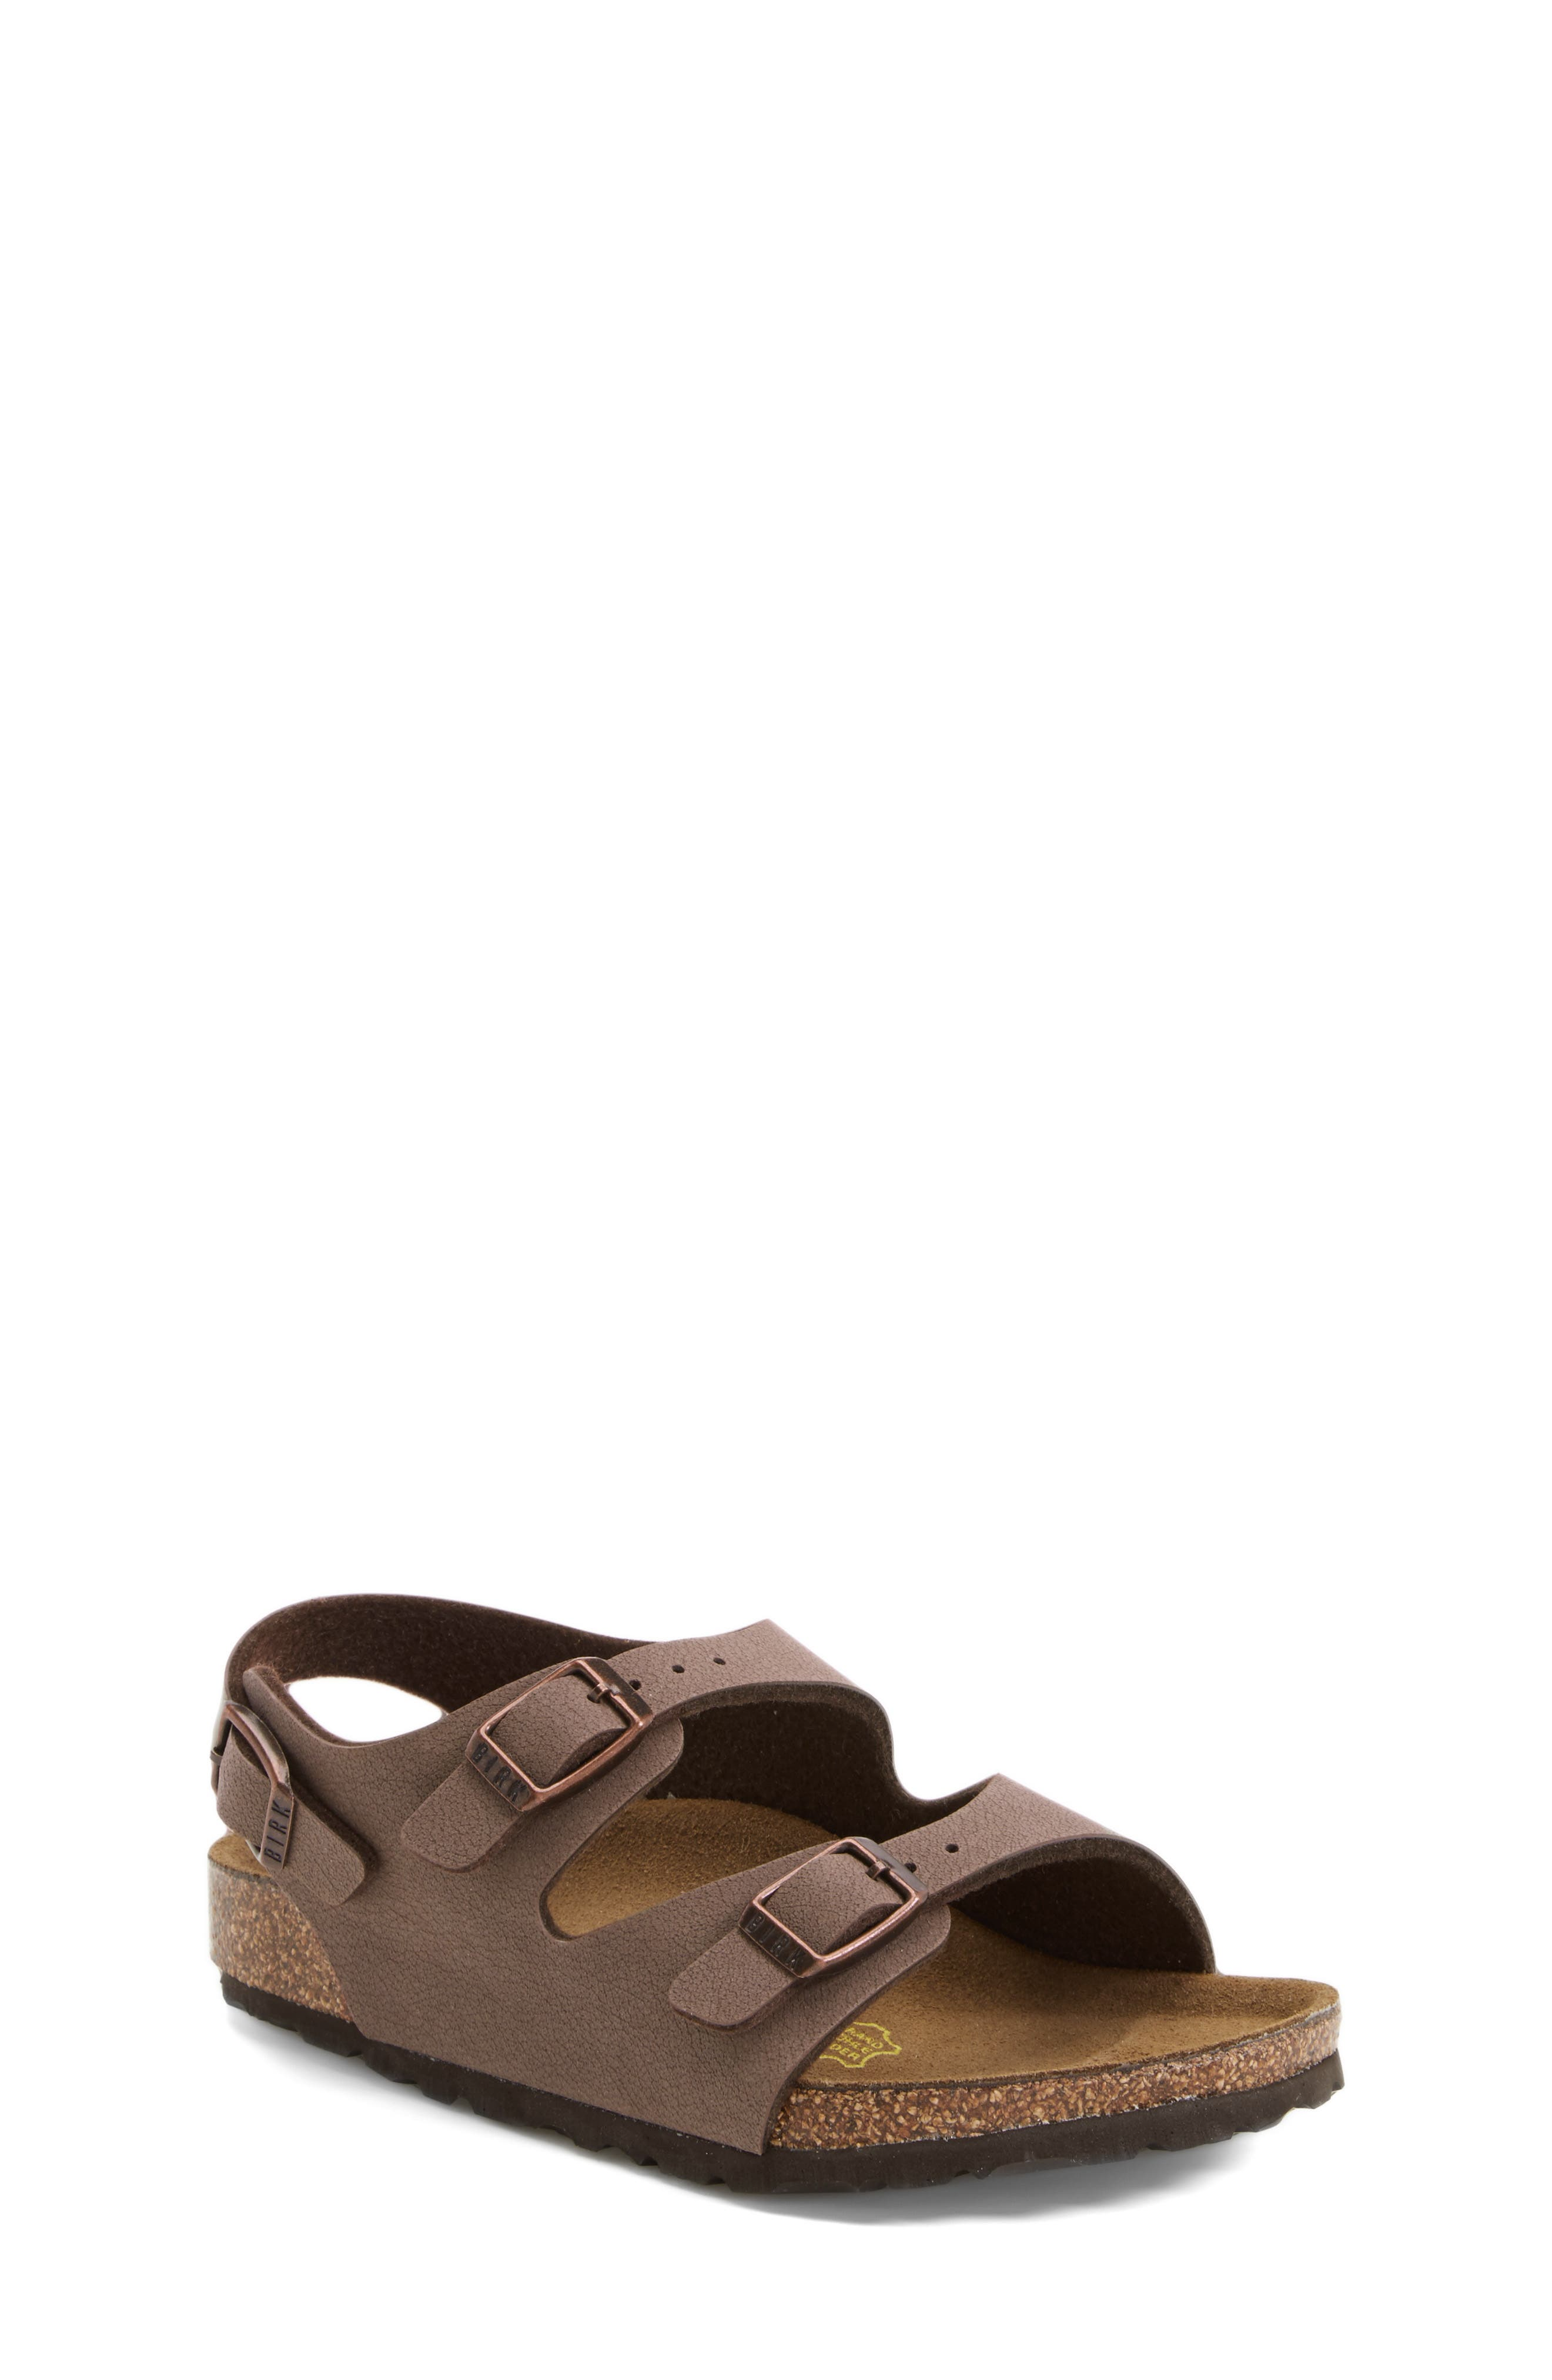 'Roma' Sandal,                         Main,                         color, MOCHA